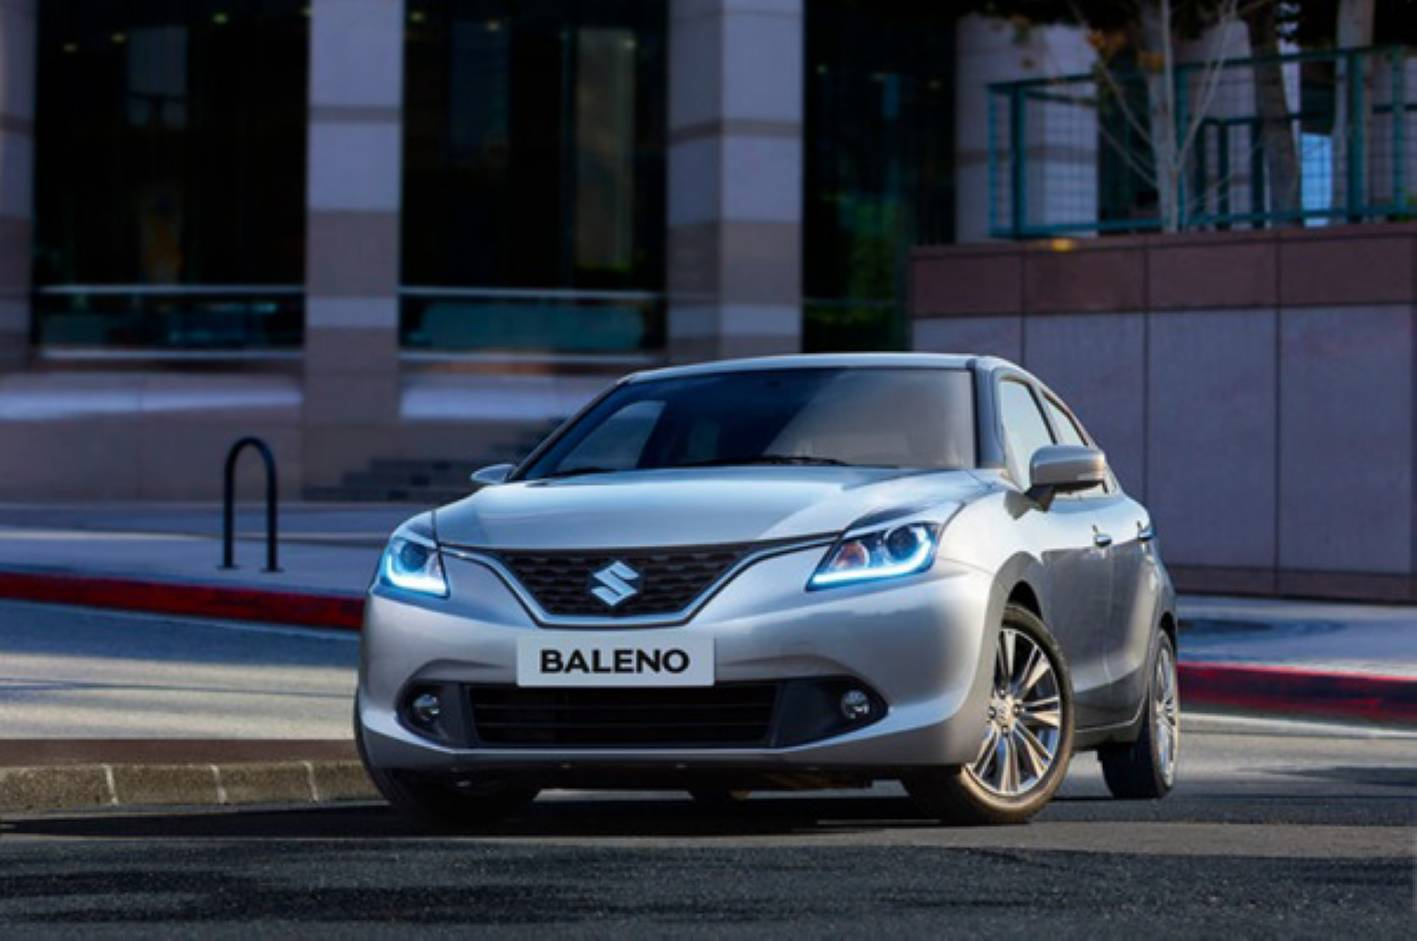 News - Suzuki Confirms All-New Baleno